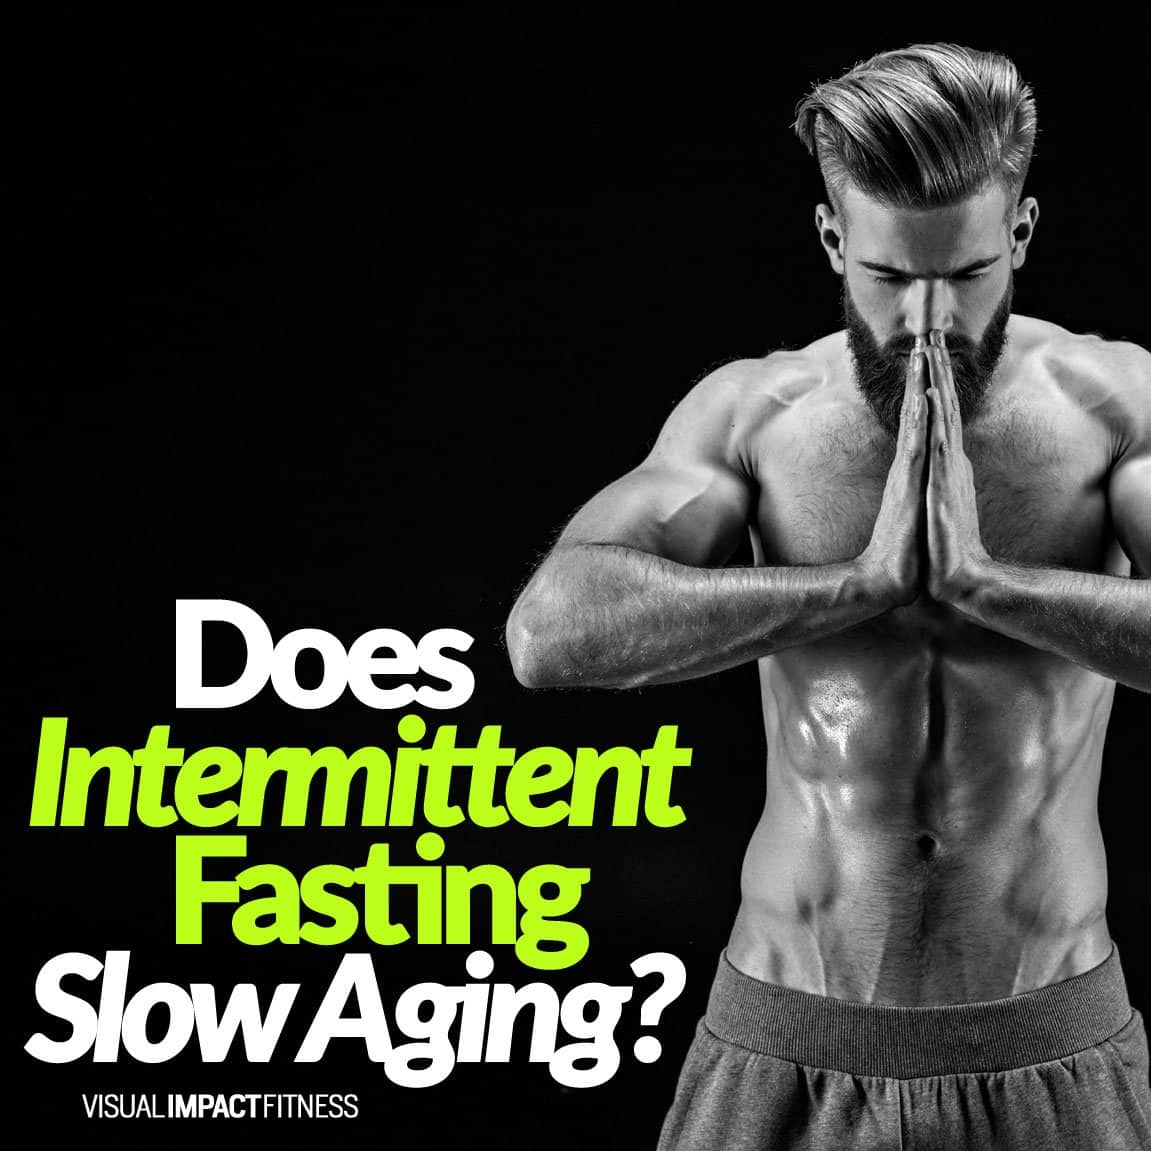 Does Intermittent Fasting Slow Aging